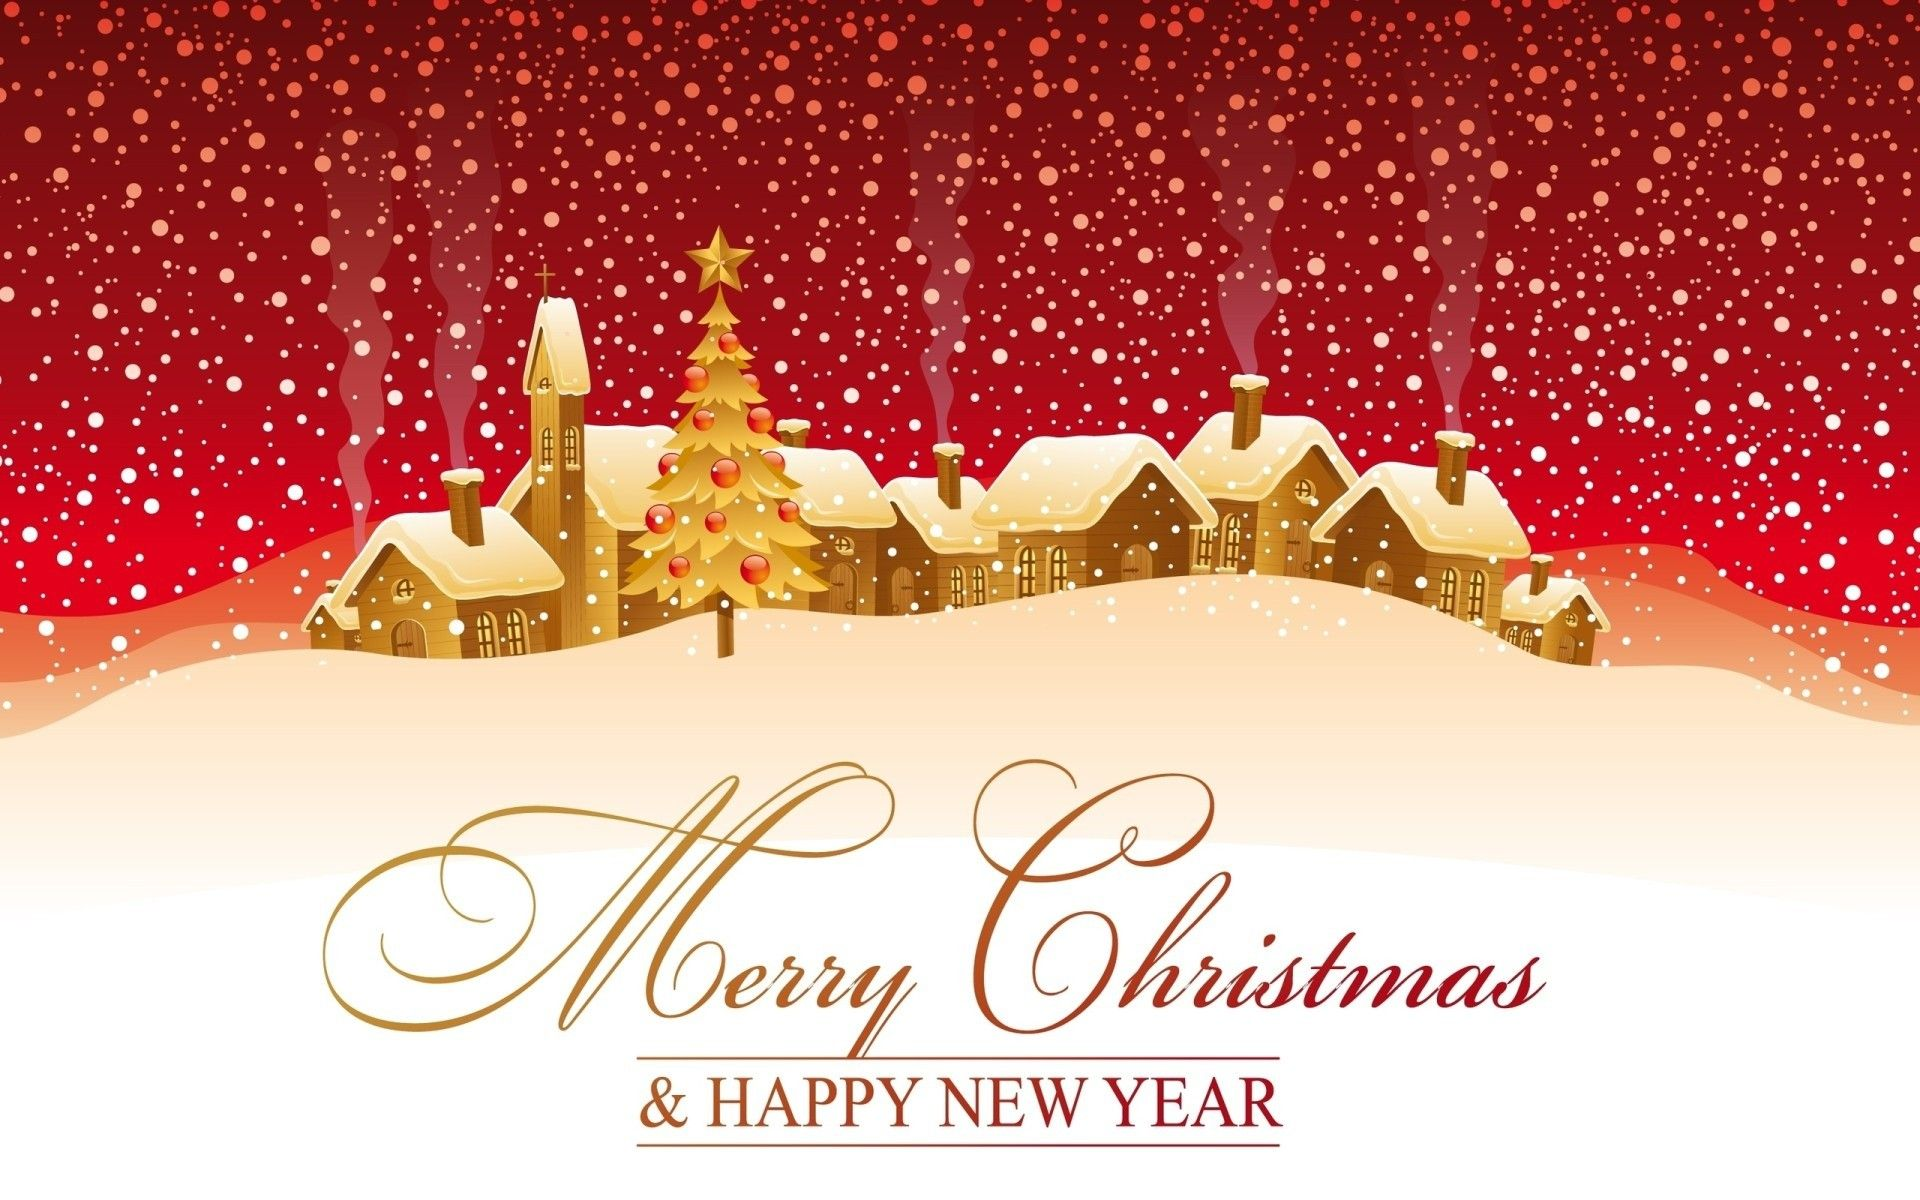 merry christmas and happy new year hd wallpaper